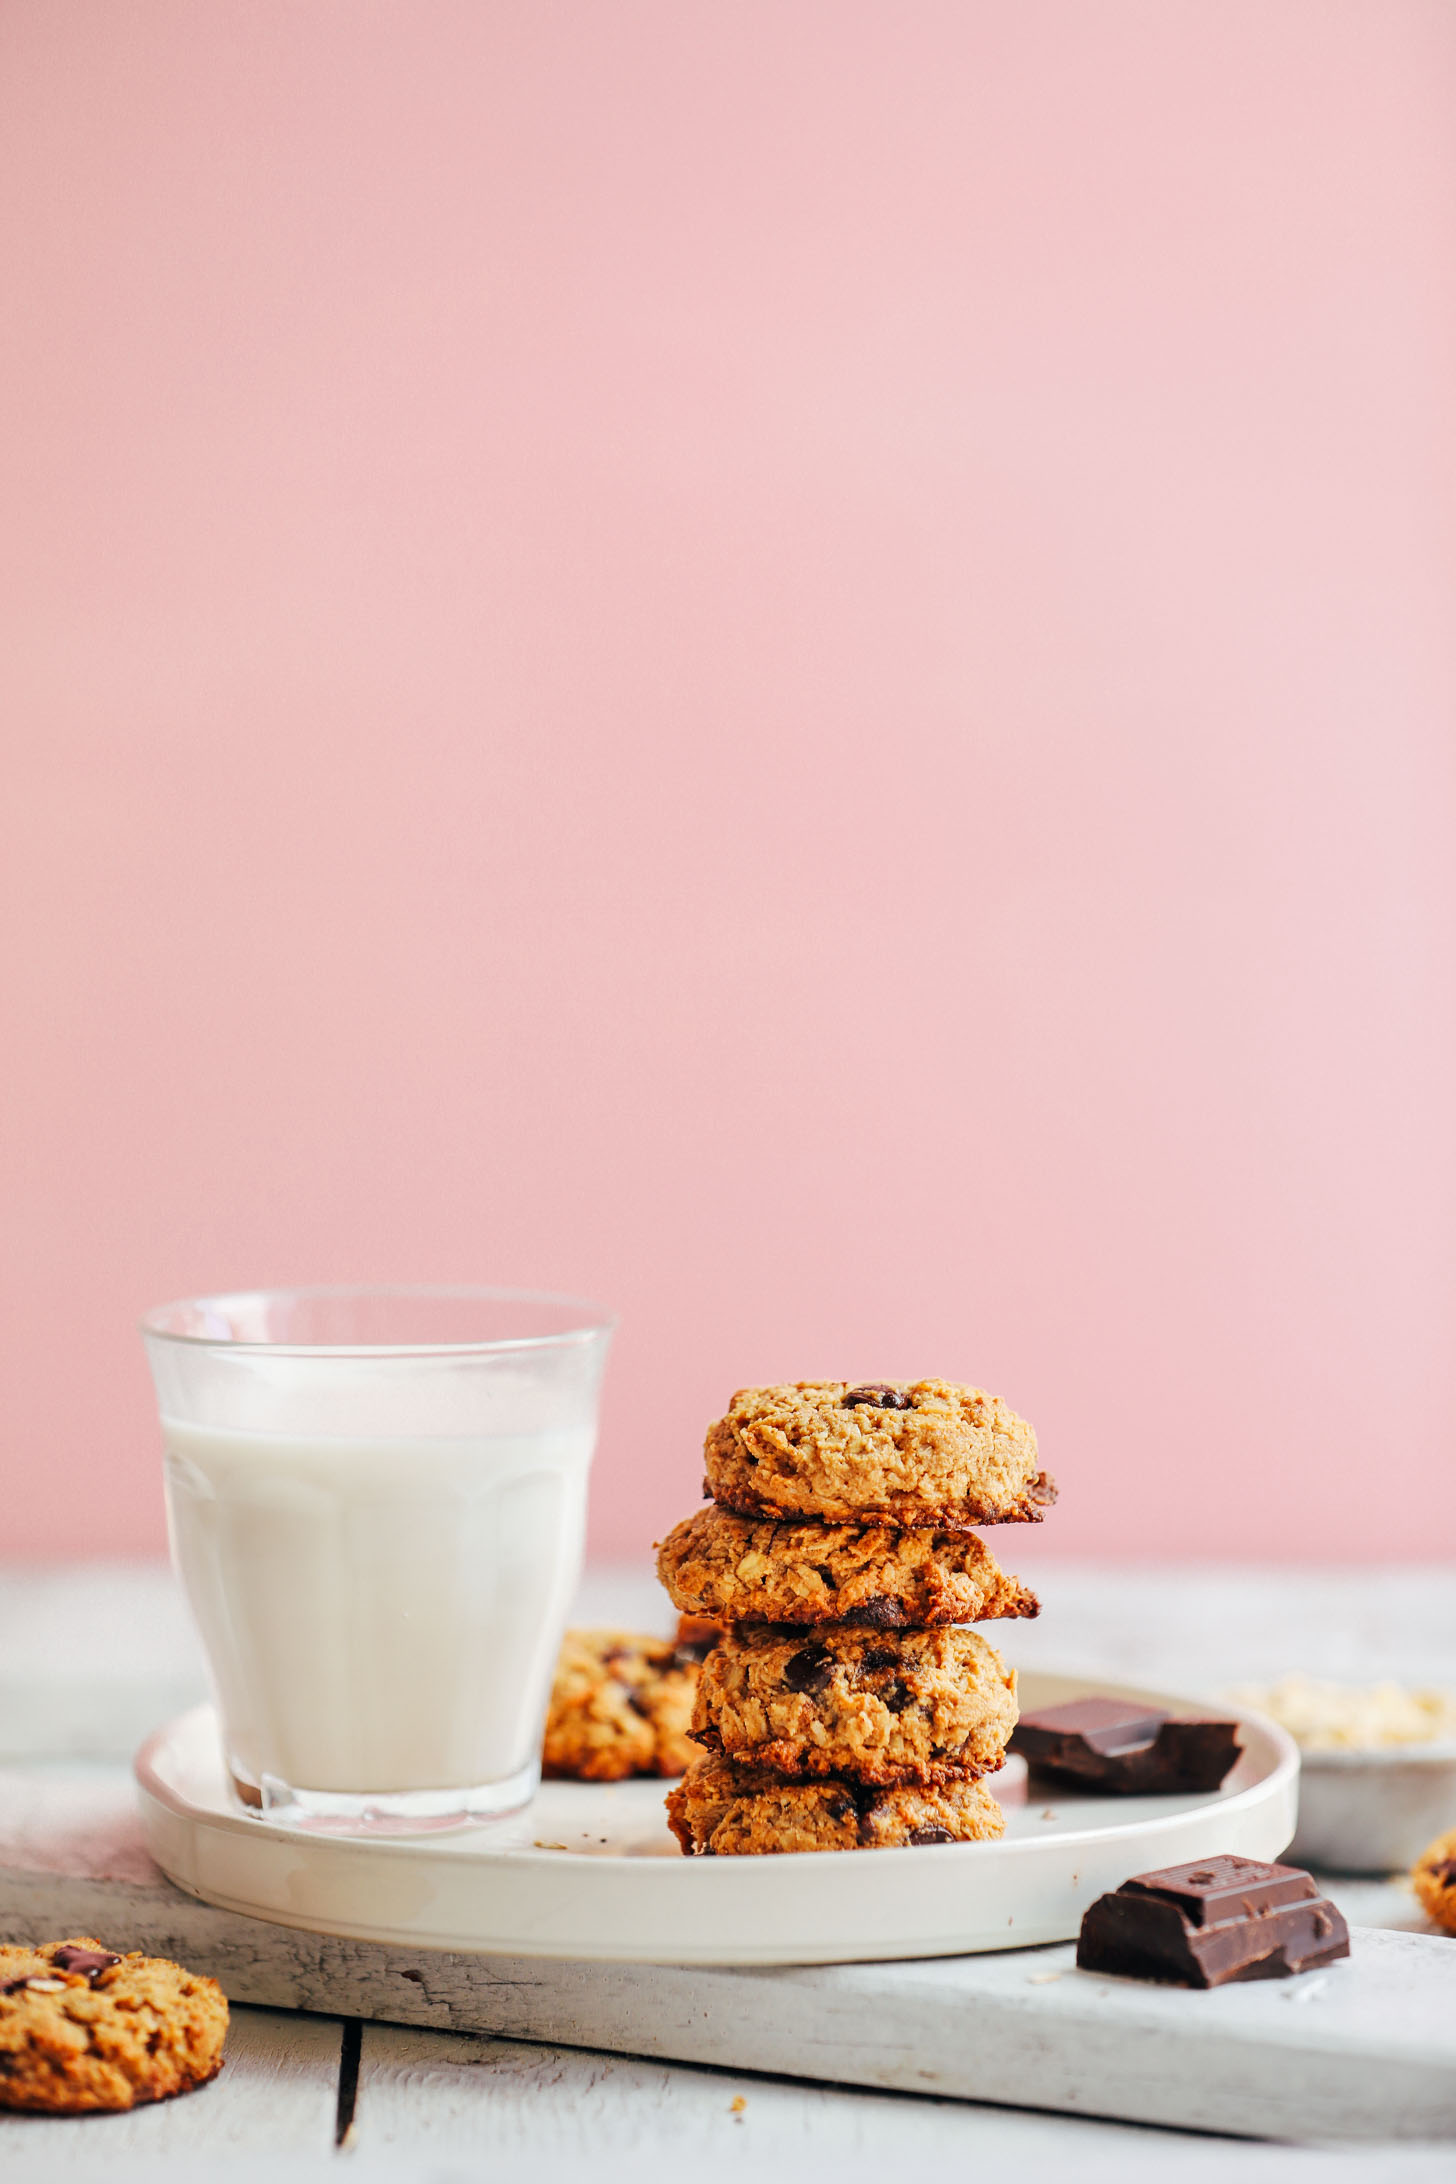 A stack of healthy Gluten-Free Oatmeal Chocolate Chip Cookies alongside a glass of dairy-free milk